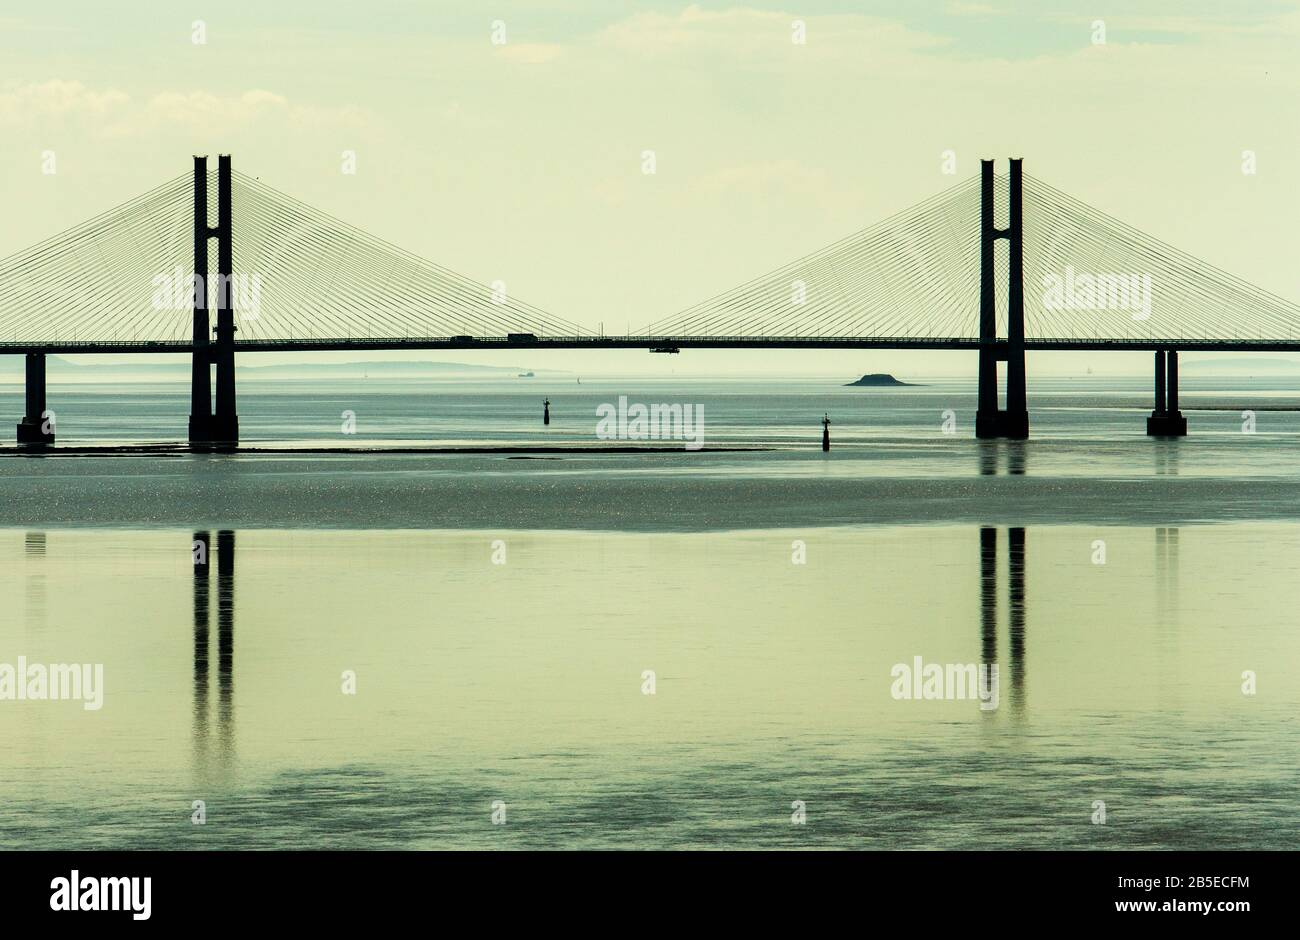 The Prince of Wales Bridge second (new) Severn suspension bridge crossing the estuary of the River Severn bridge reflected in the water, England UK Stock Photo